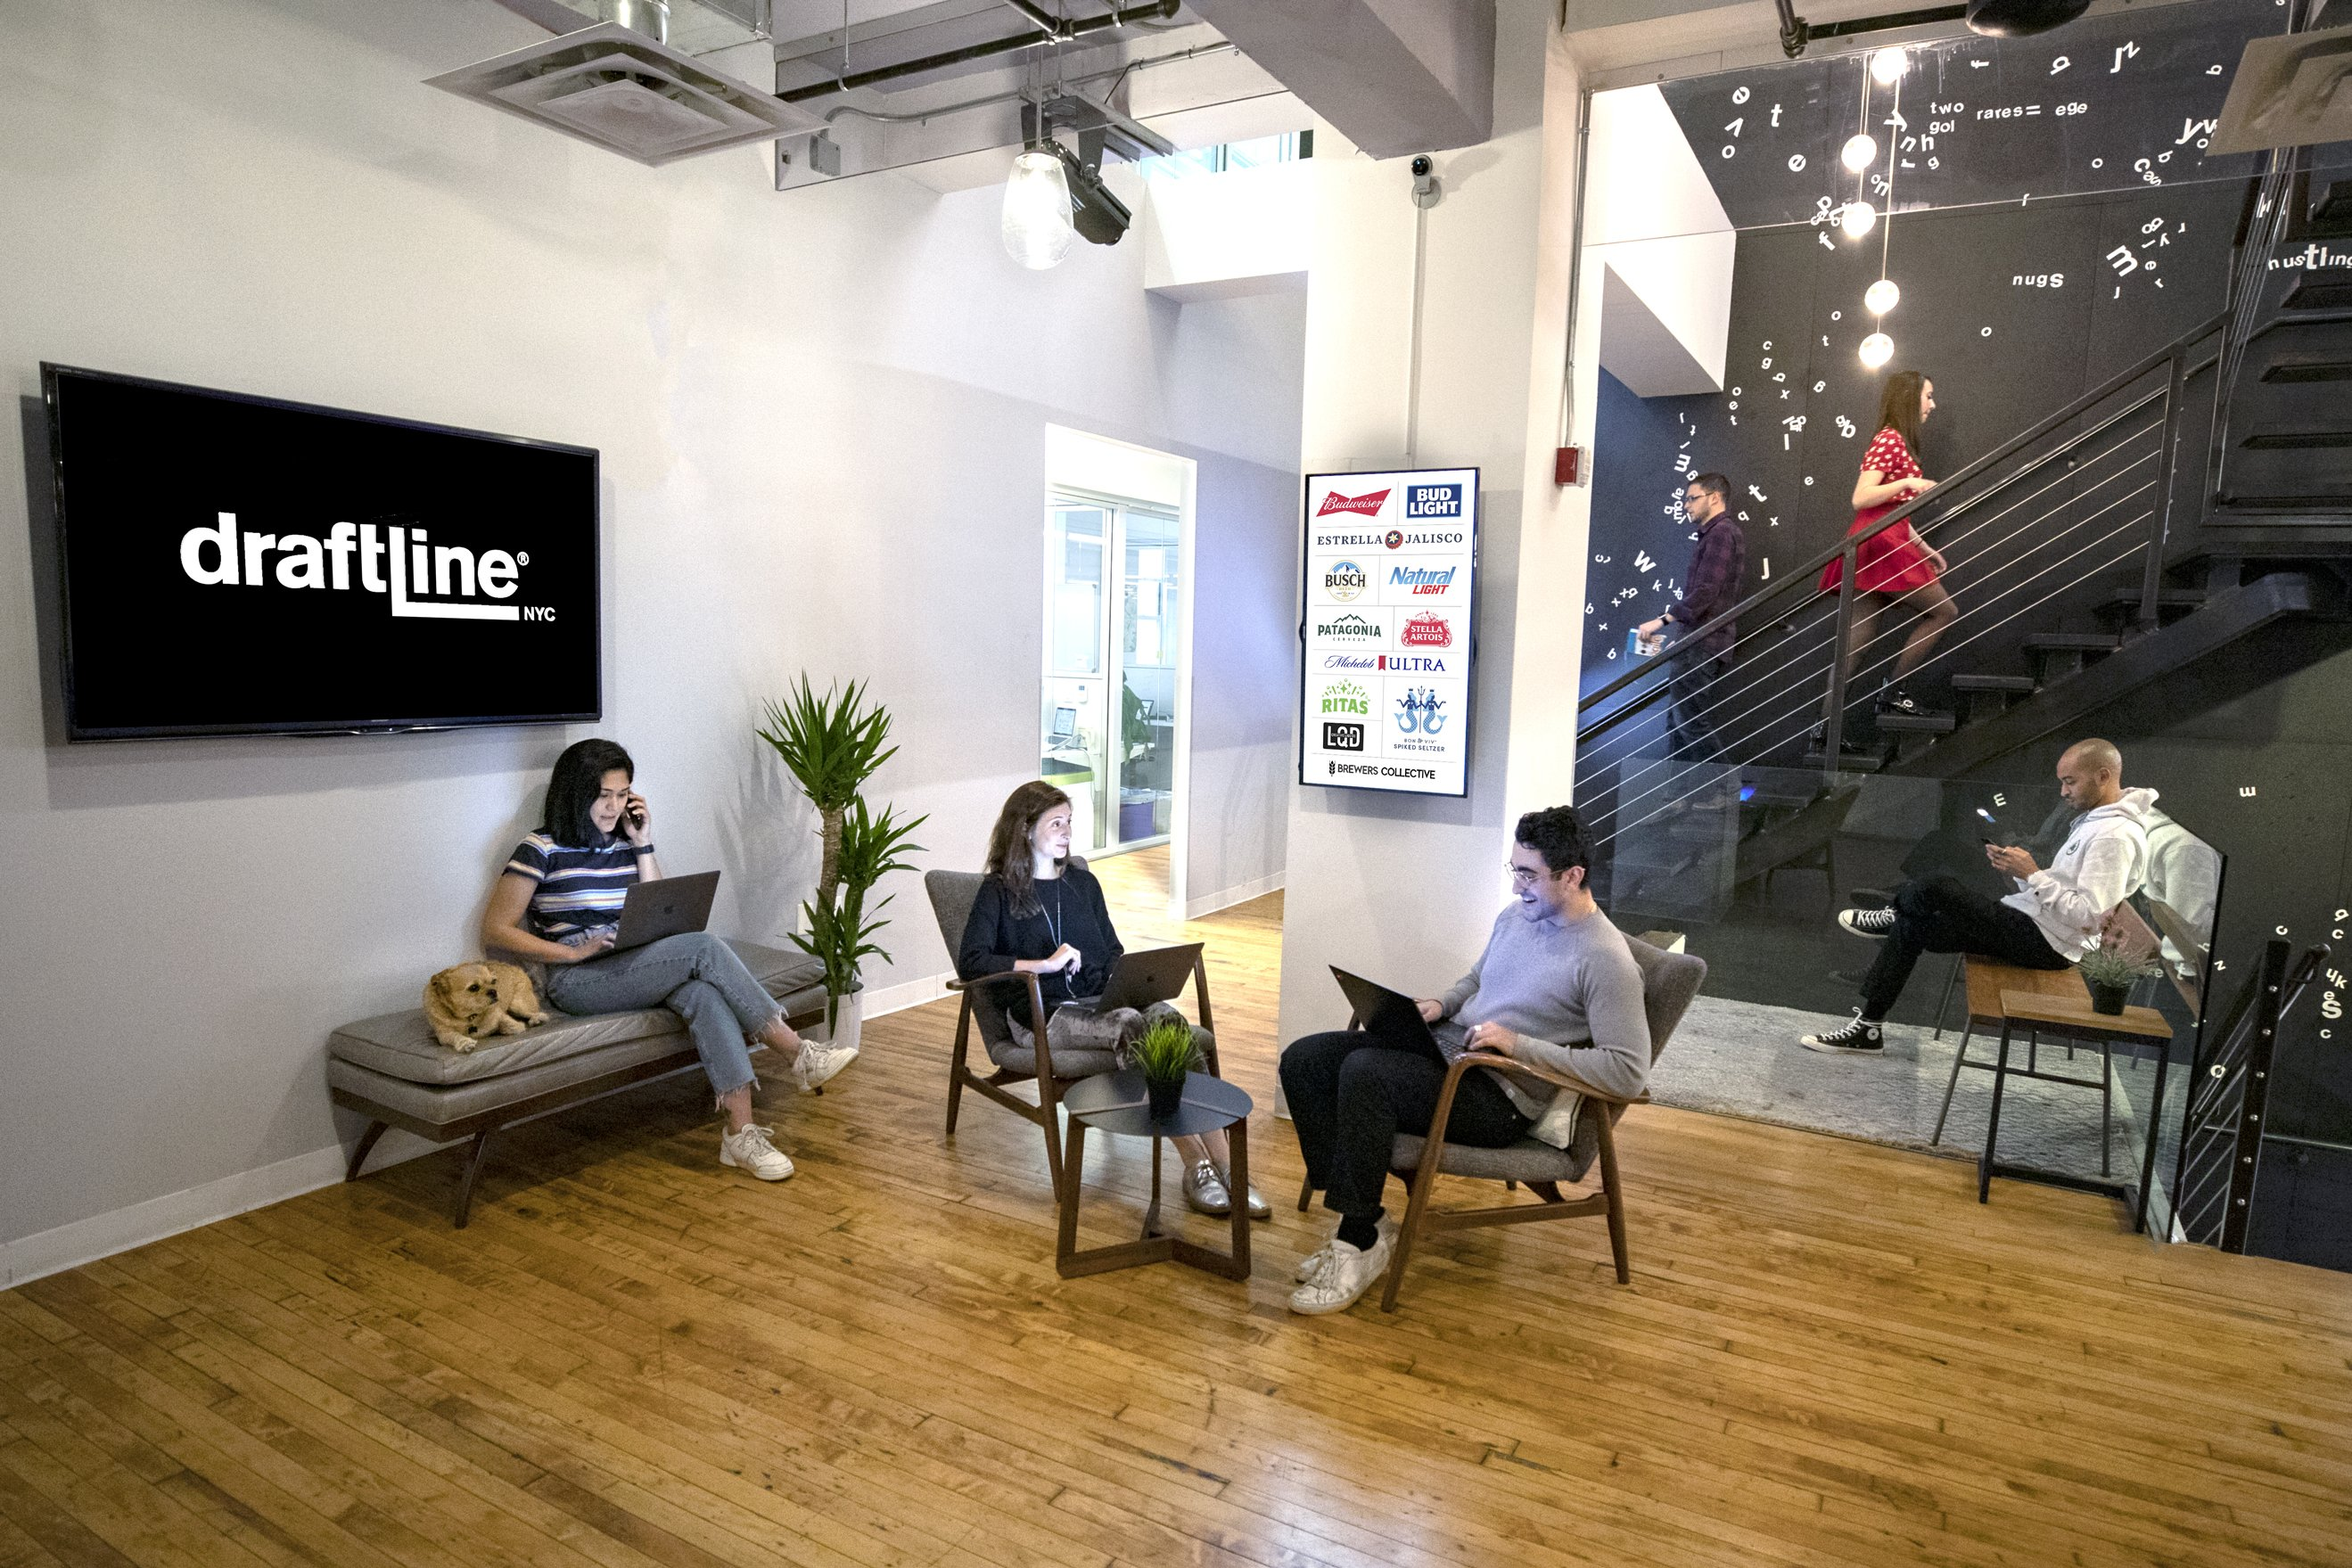 Anheuser-Busch launches in-house creative agency Draftline